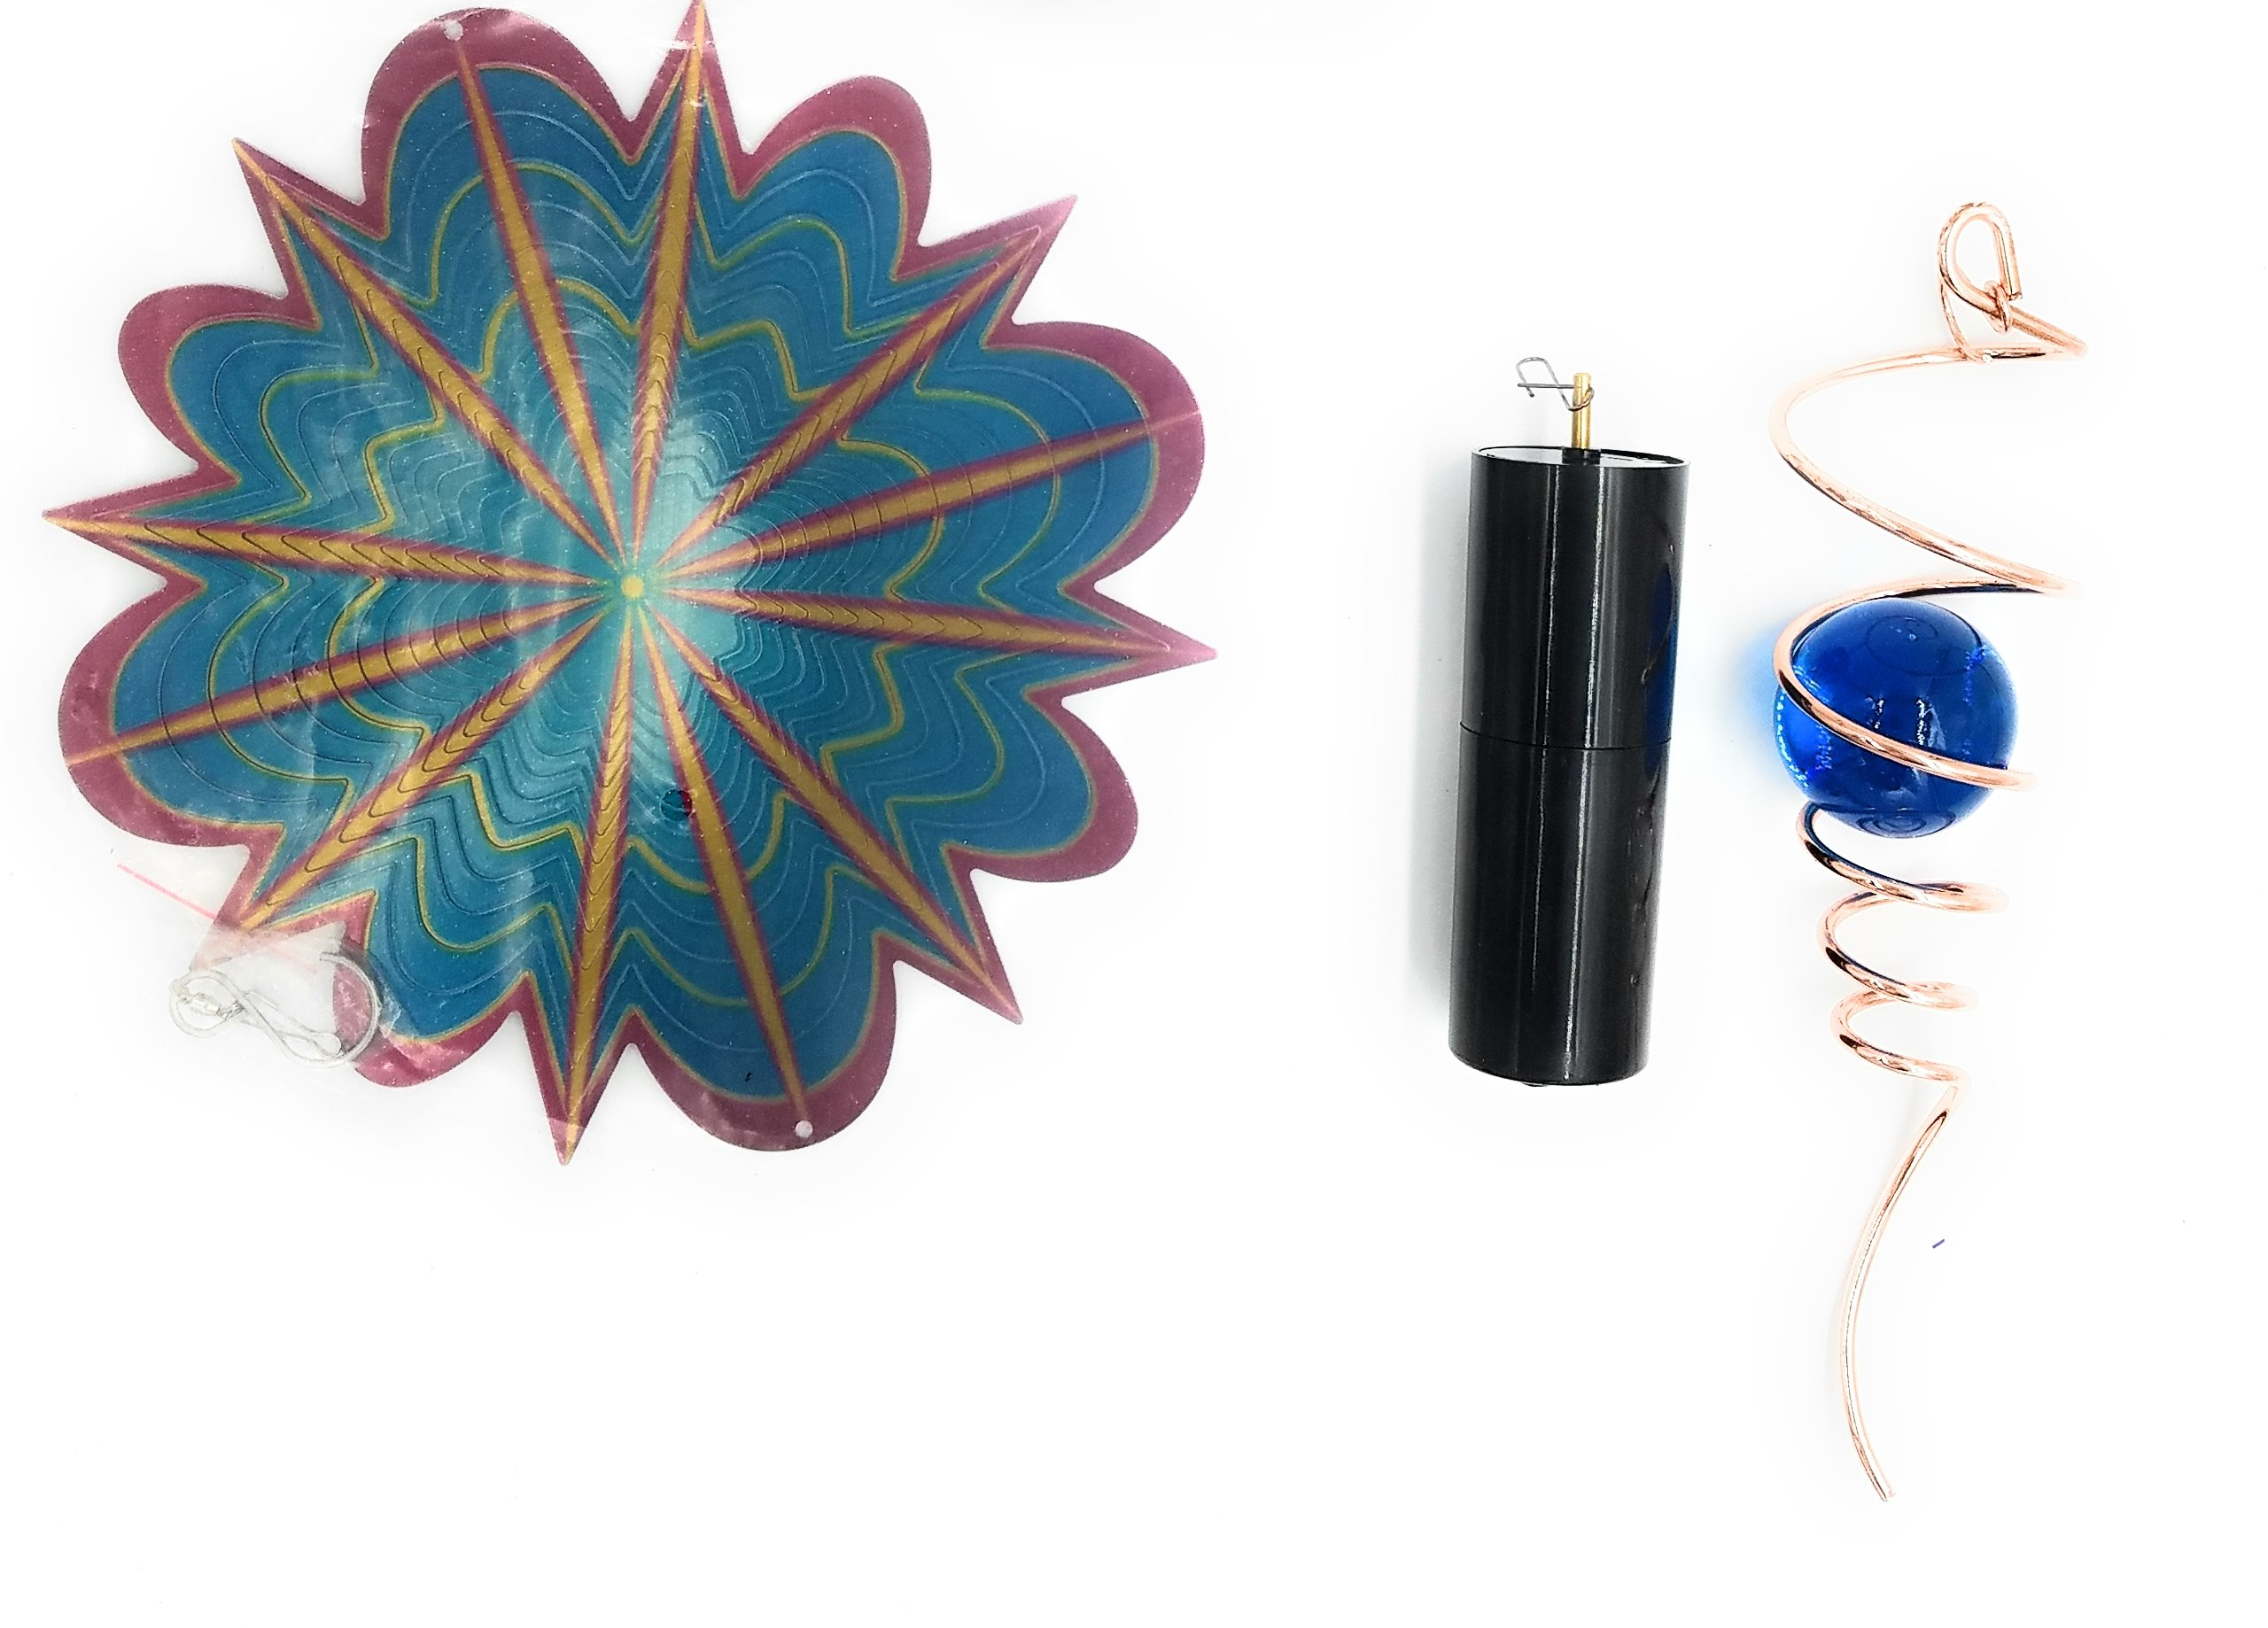 Multi-Color Star Splash Wind Spinner With Blue Ball Copper Tail And Battery Motor